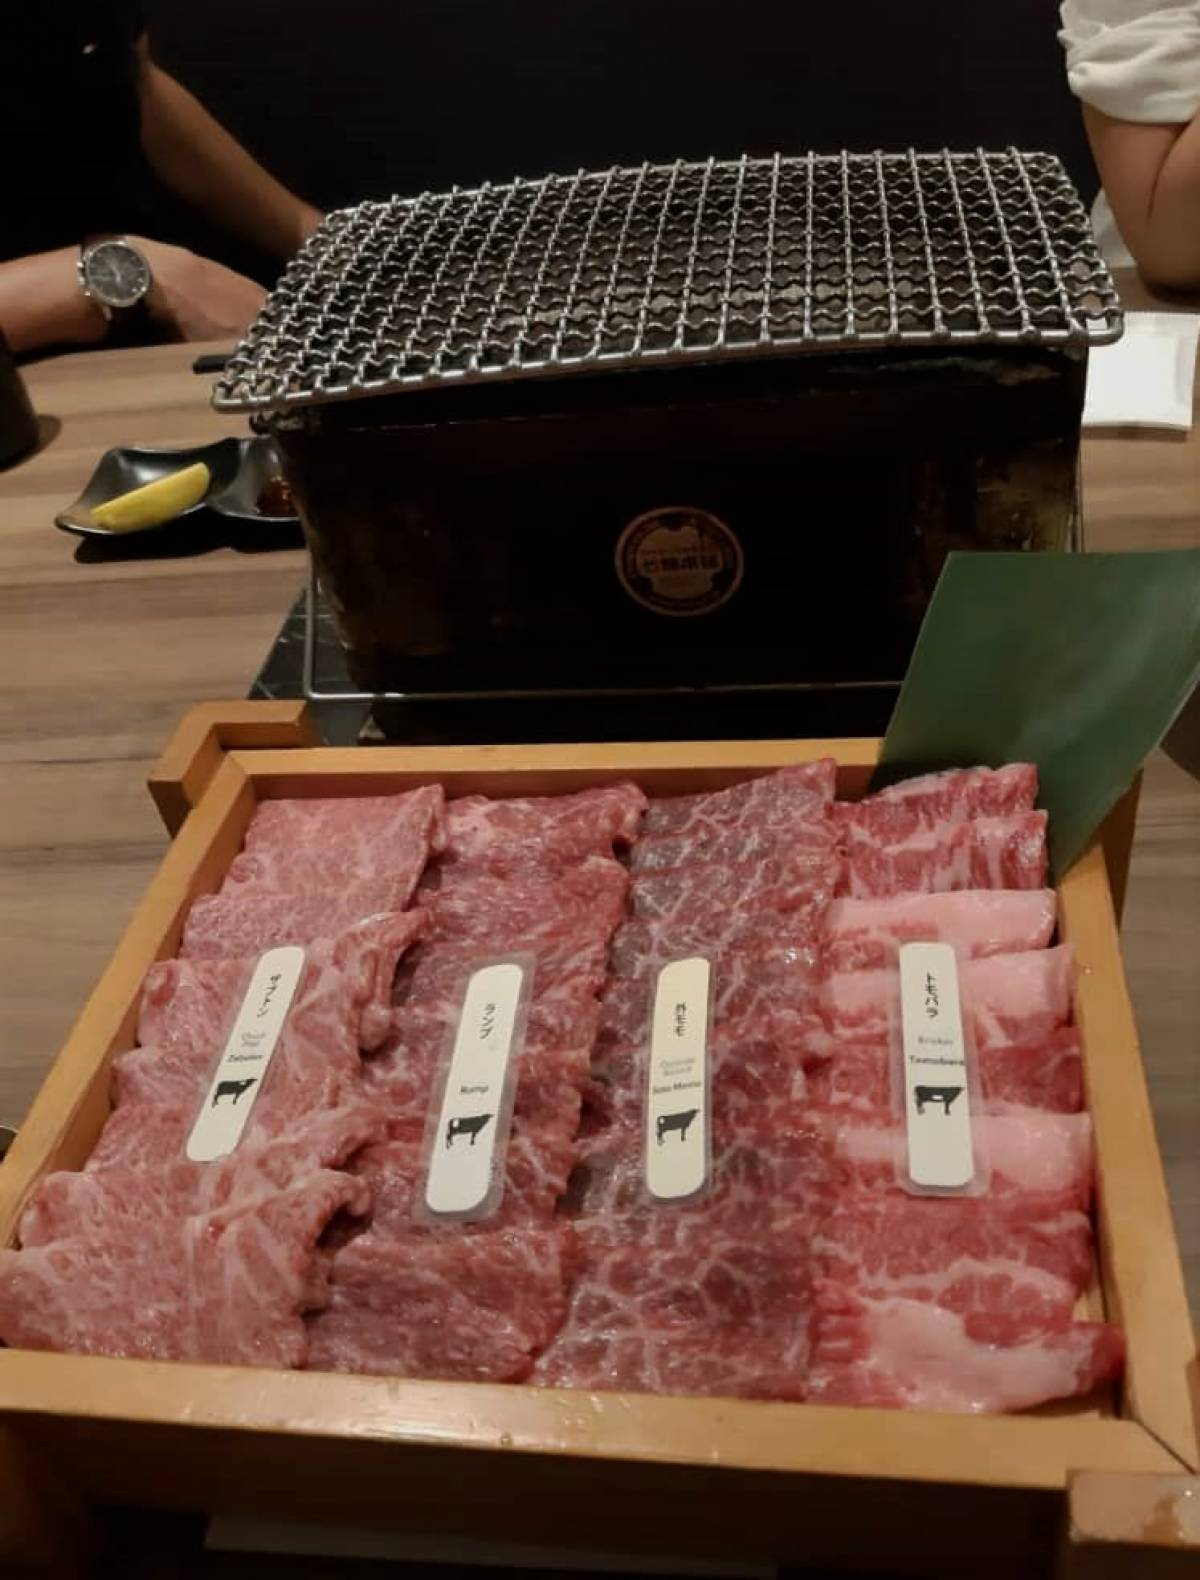 Operation: Grilling Wagyu to Perfection